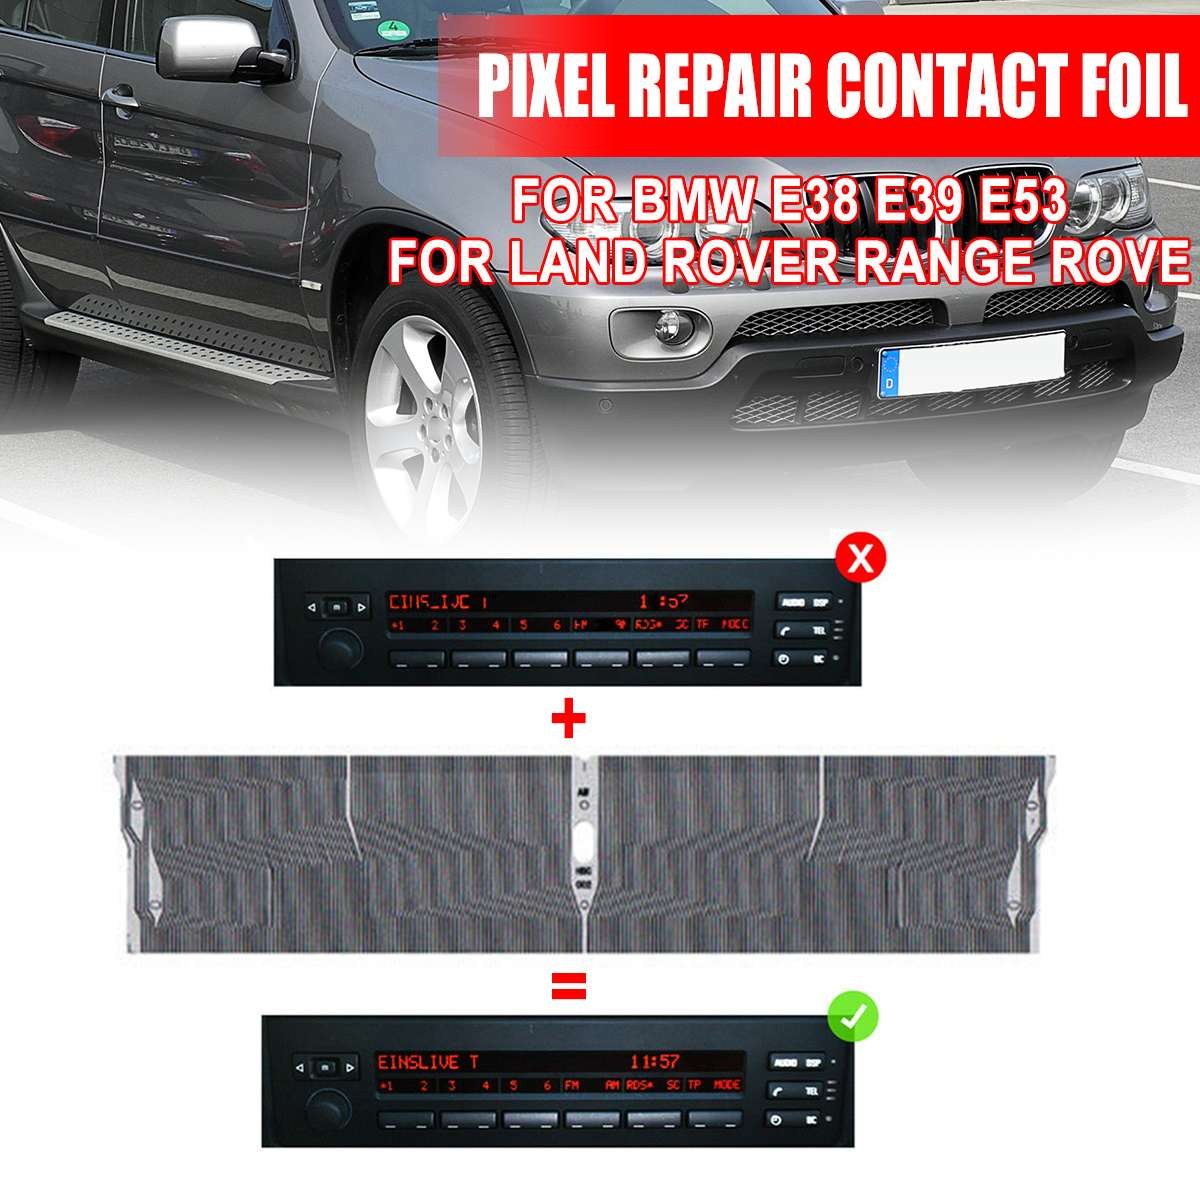 1Pcs Car Radio Display Pixel Radio Display Pixel Repair Contact Foil Suitable For BMW E38 E39 E53 For Land Rover For Range Rove